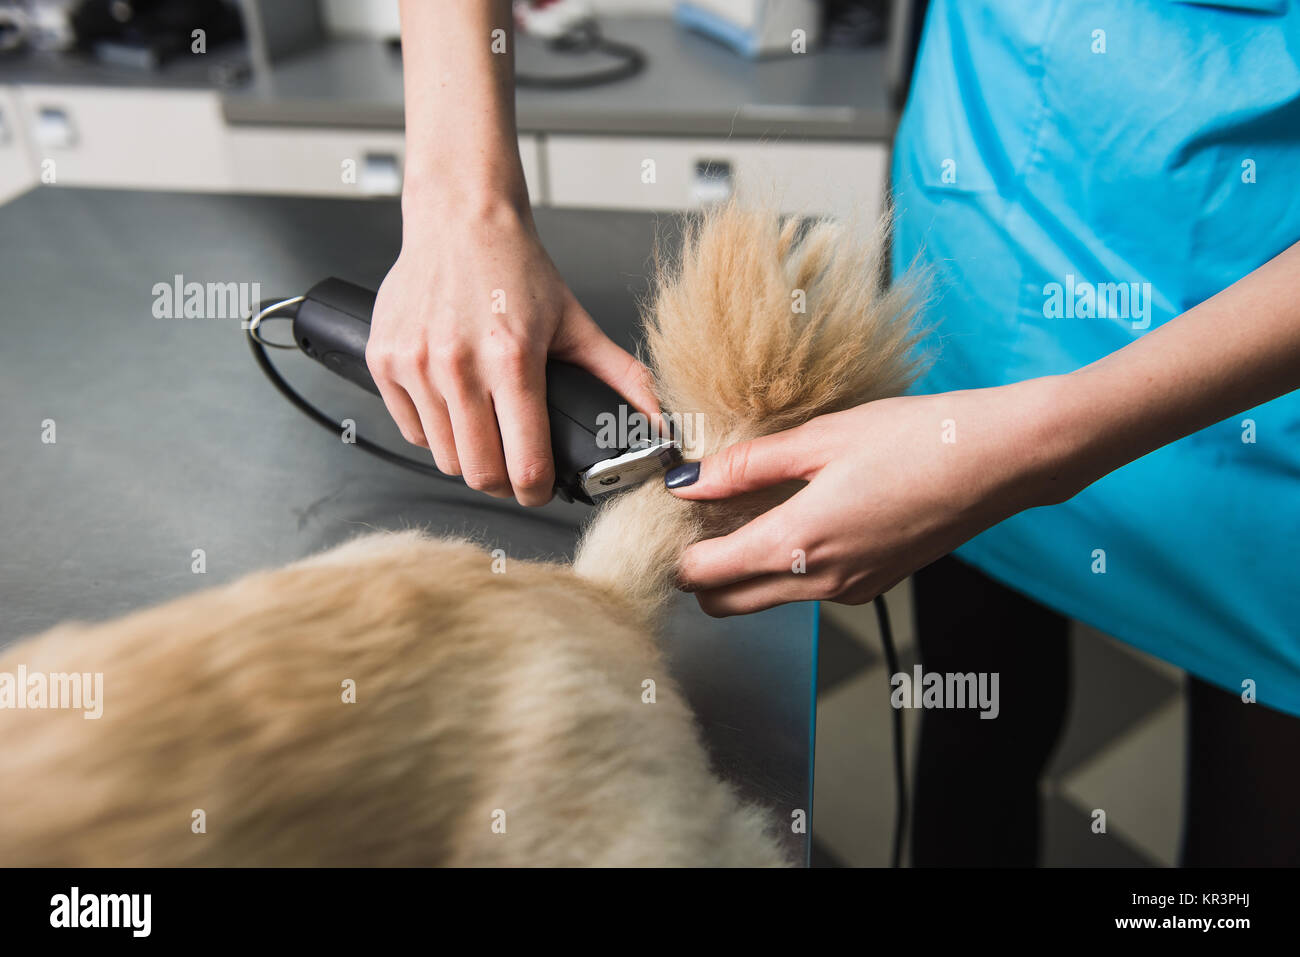 Cute Little Dog Groomer Salon Stock Photos Cute Little Dog Groomer